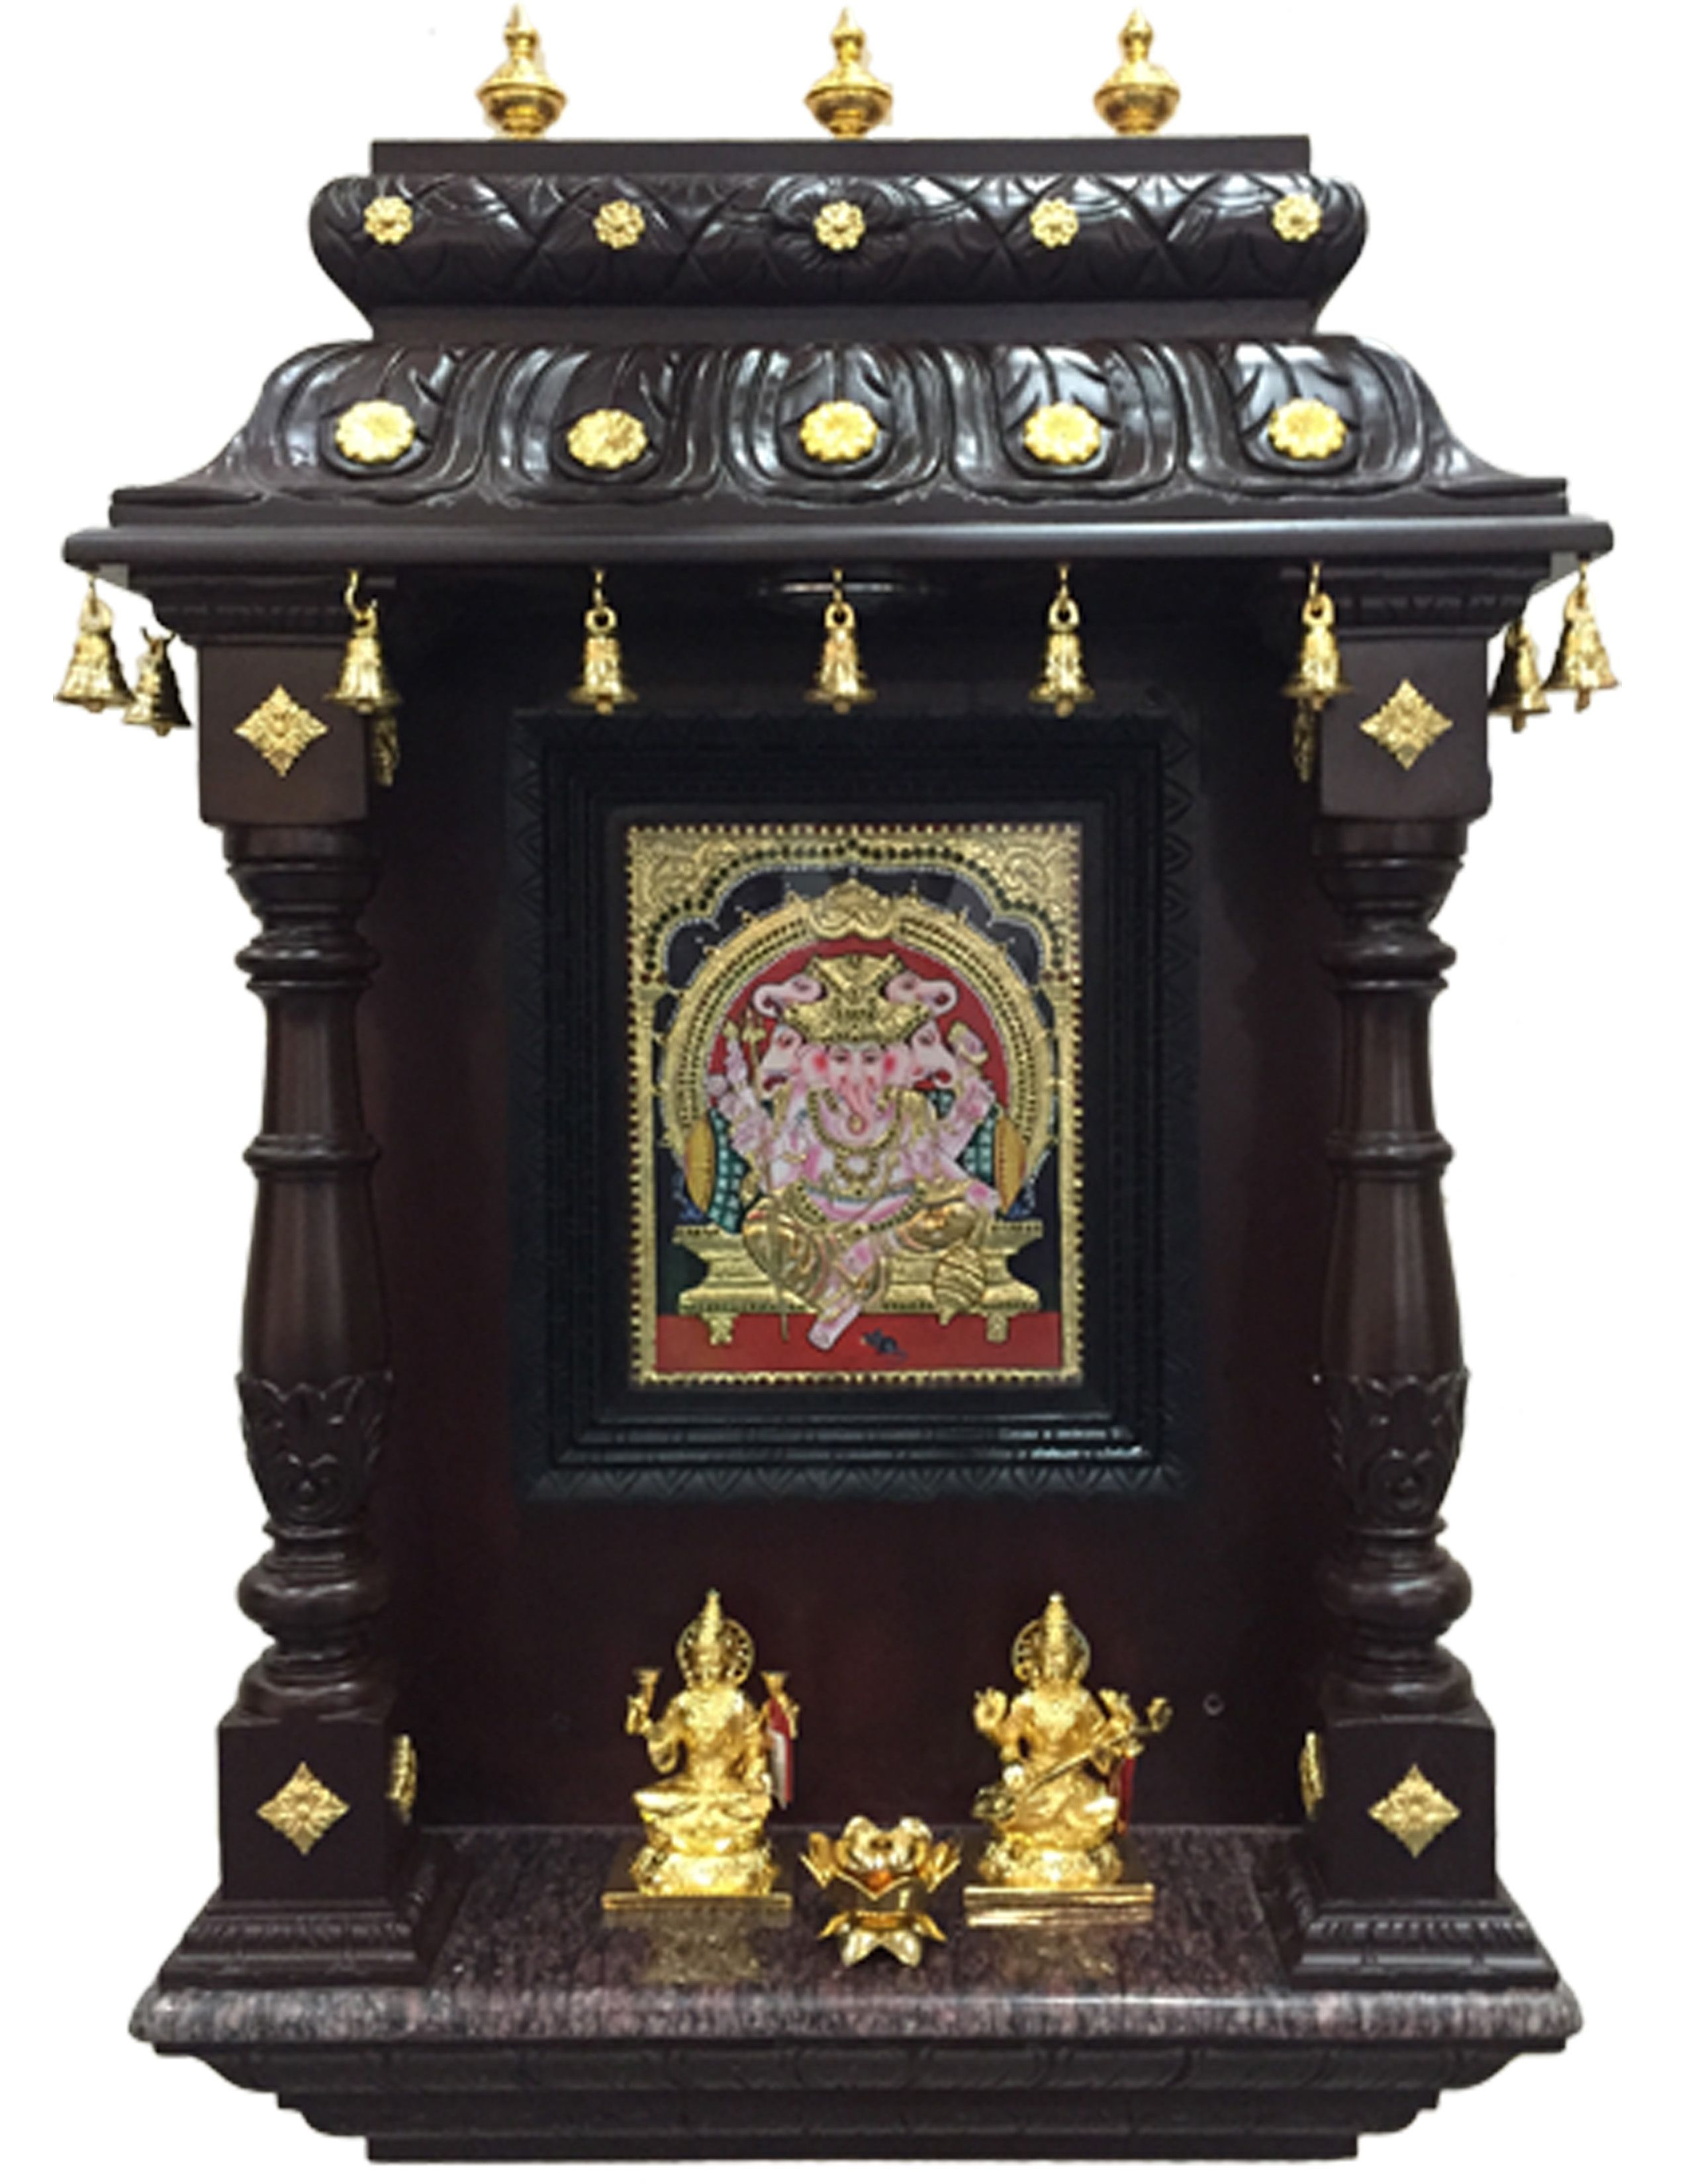 Image Result For Mantras On Pooja Room Door: Pin By Mantra Gold Coatings On Pooja Room Puja